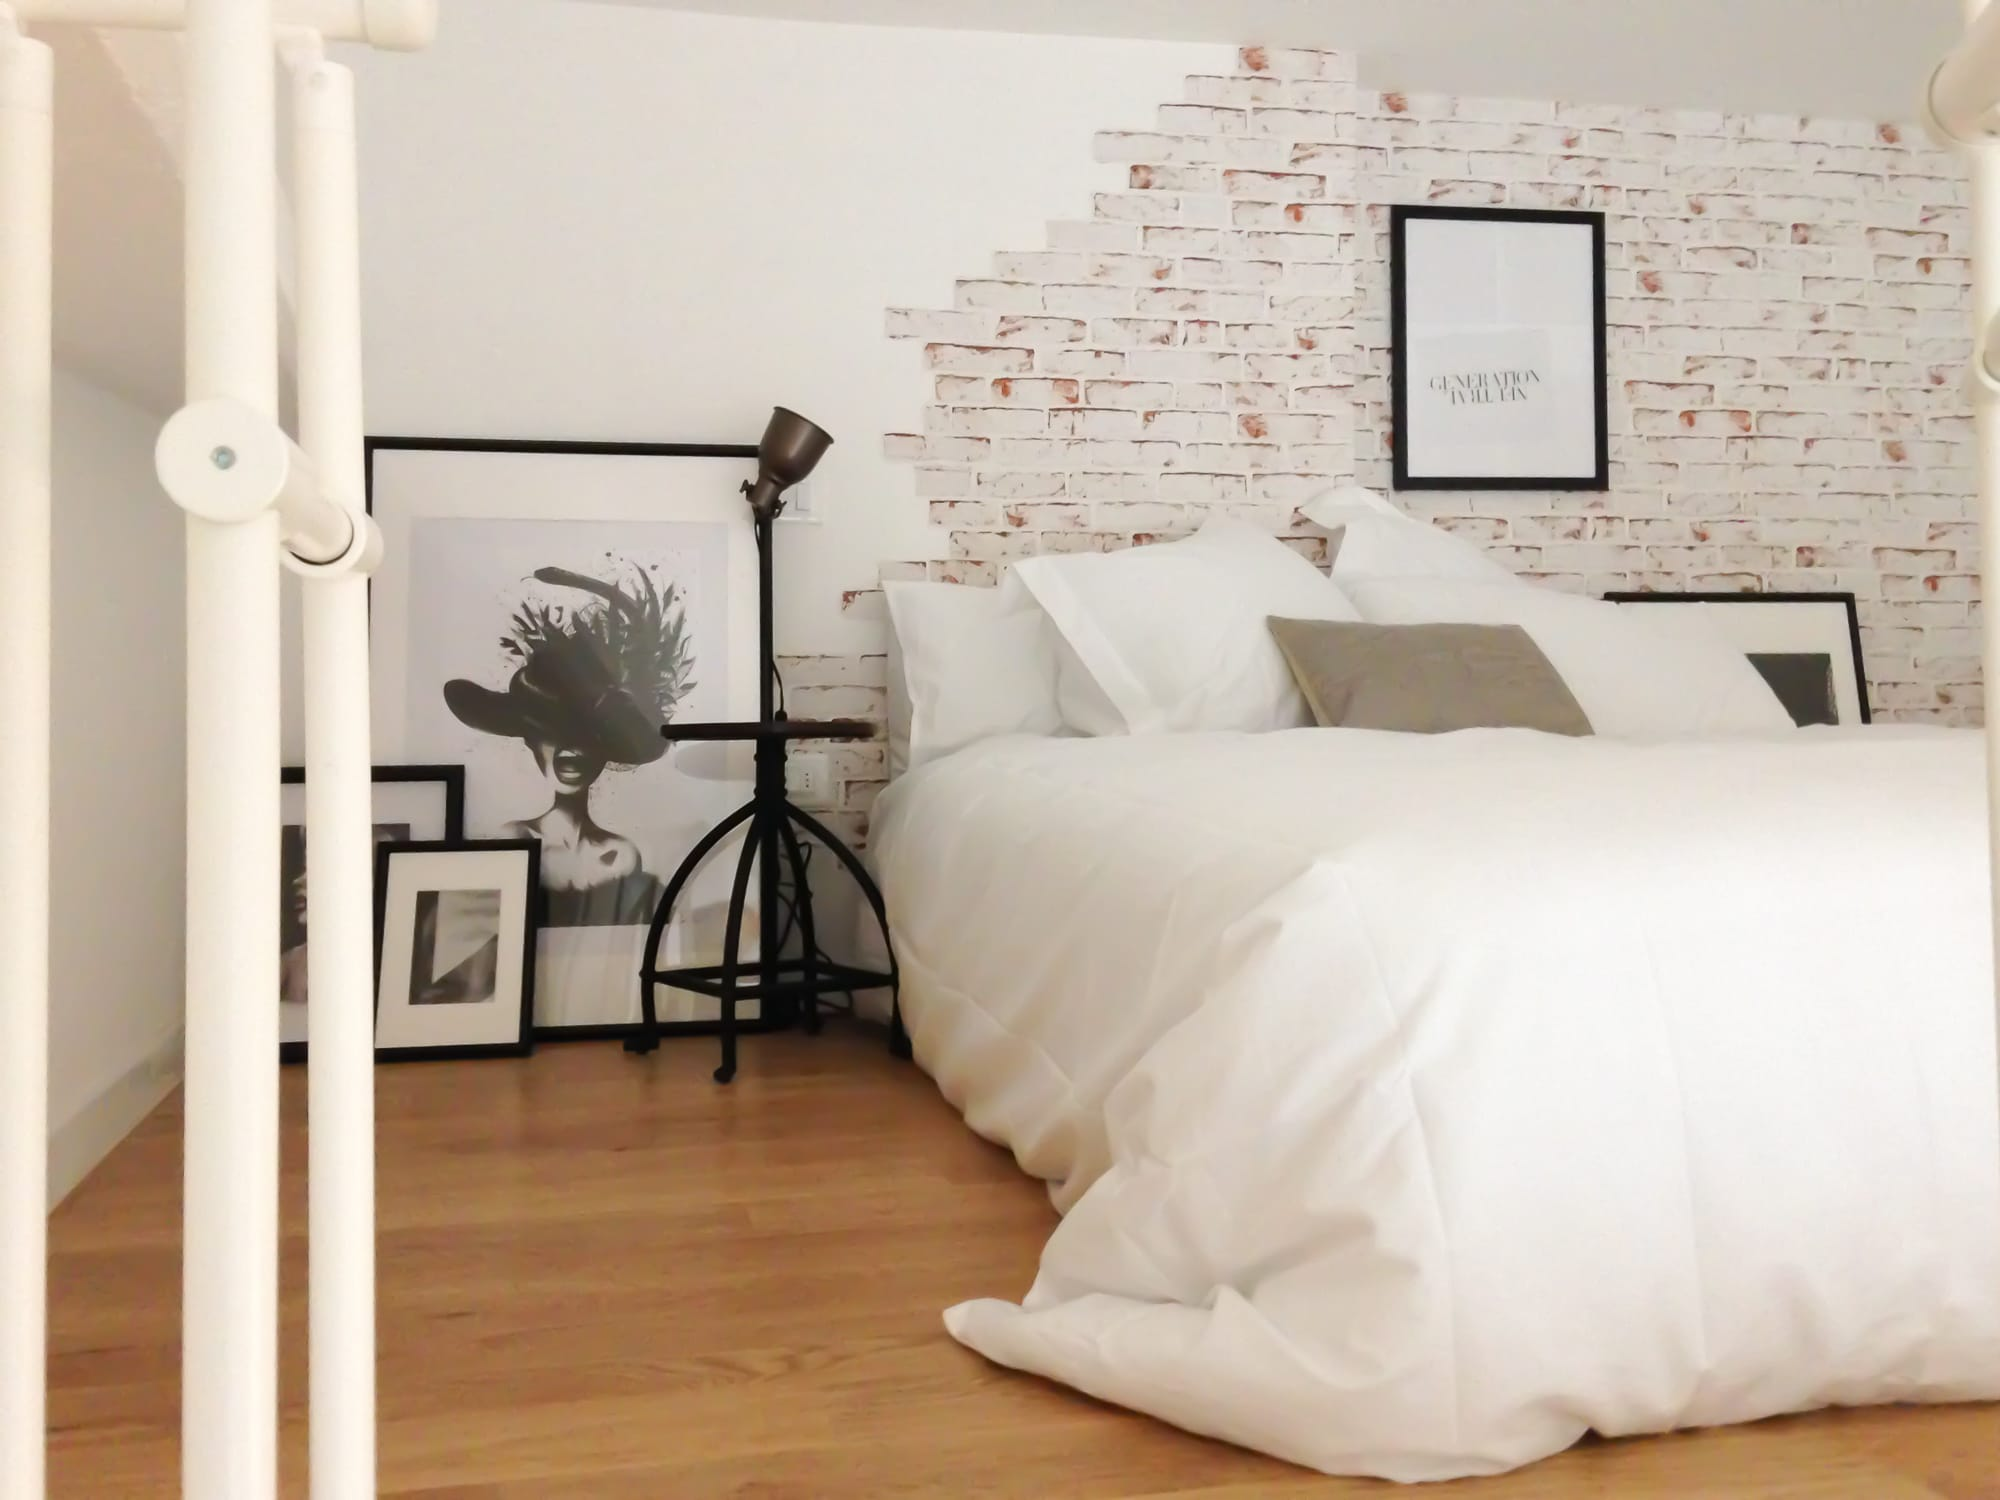 Minimal bed on pallets with brick wallpaper on the back and minimal frames on the floor. As side tables, there are two stools with a light fixture on top of it.